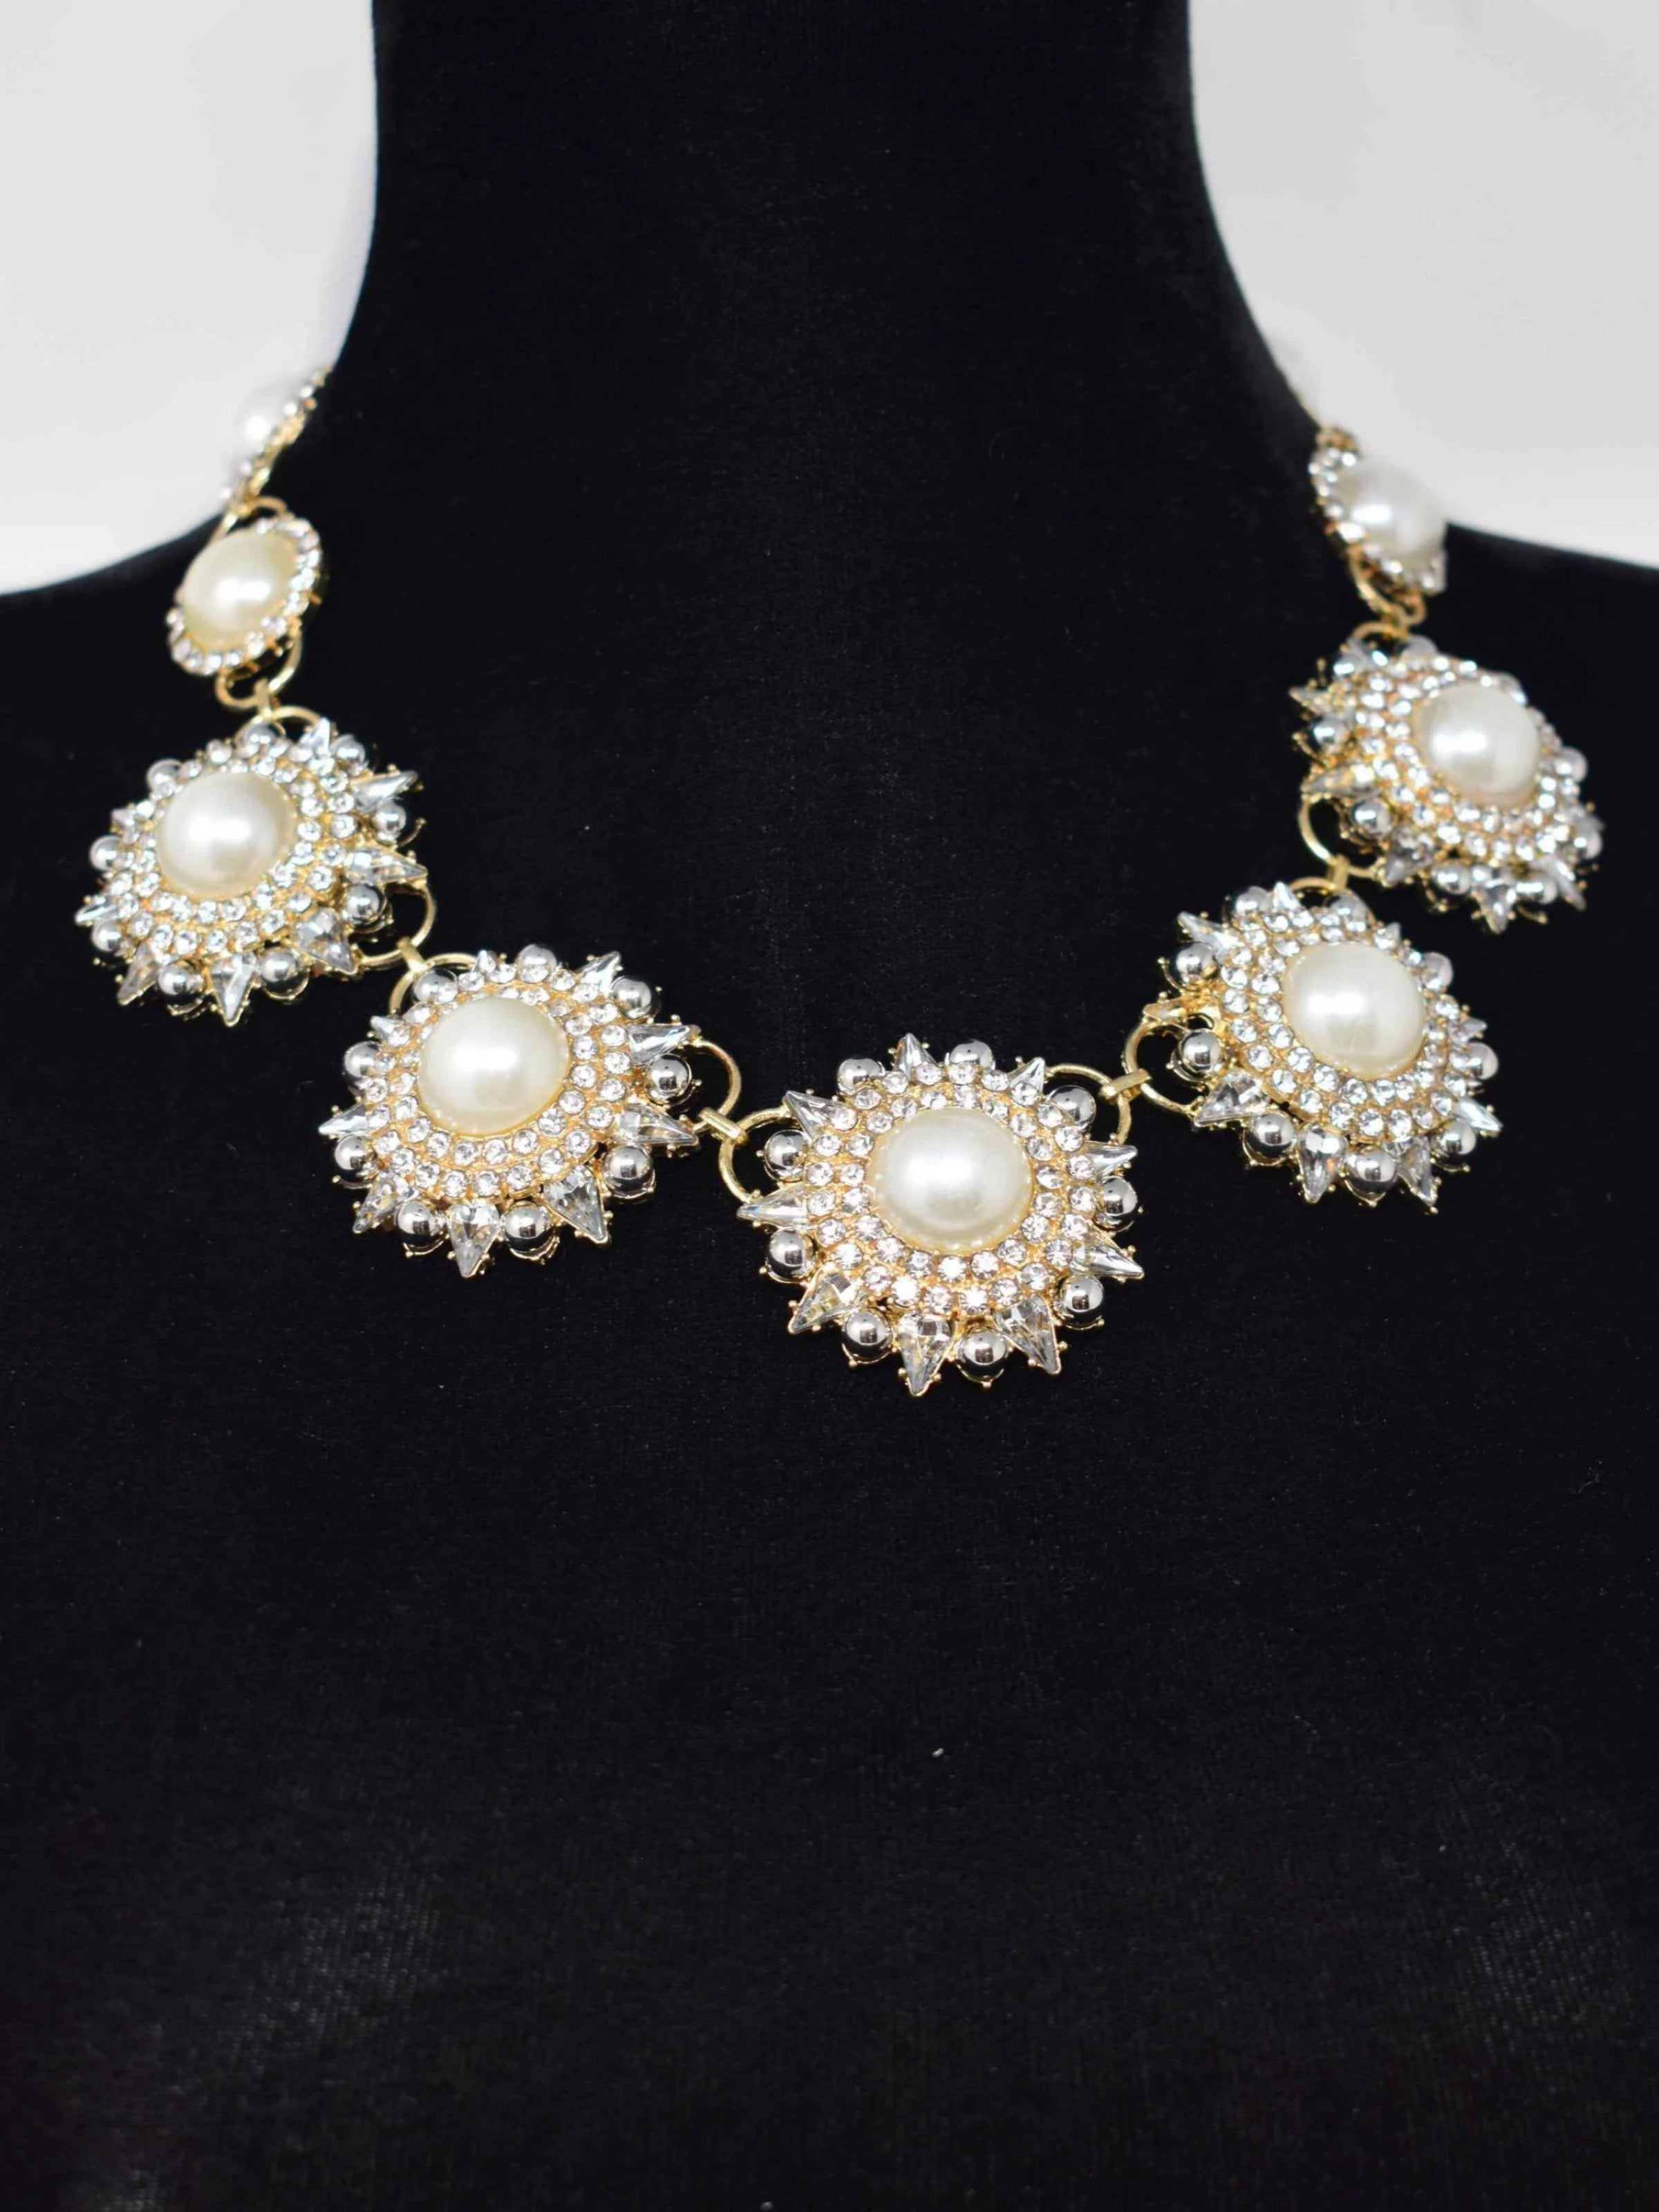 "Our Rica statement necklace will add an elegant stylish glow to your outfit. This Gold and pearl floral linked necklace is accented with stones and closes with a lobster clasp. It measures 10 1/2"" in length."